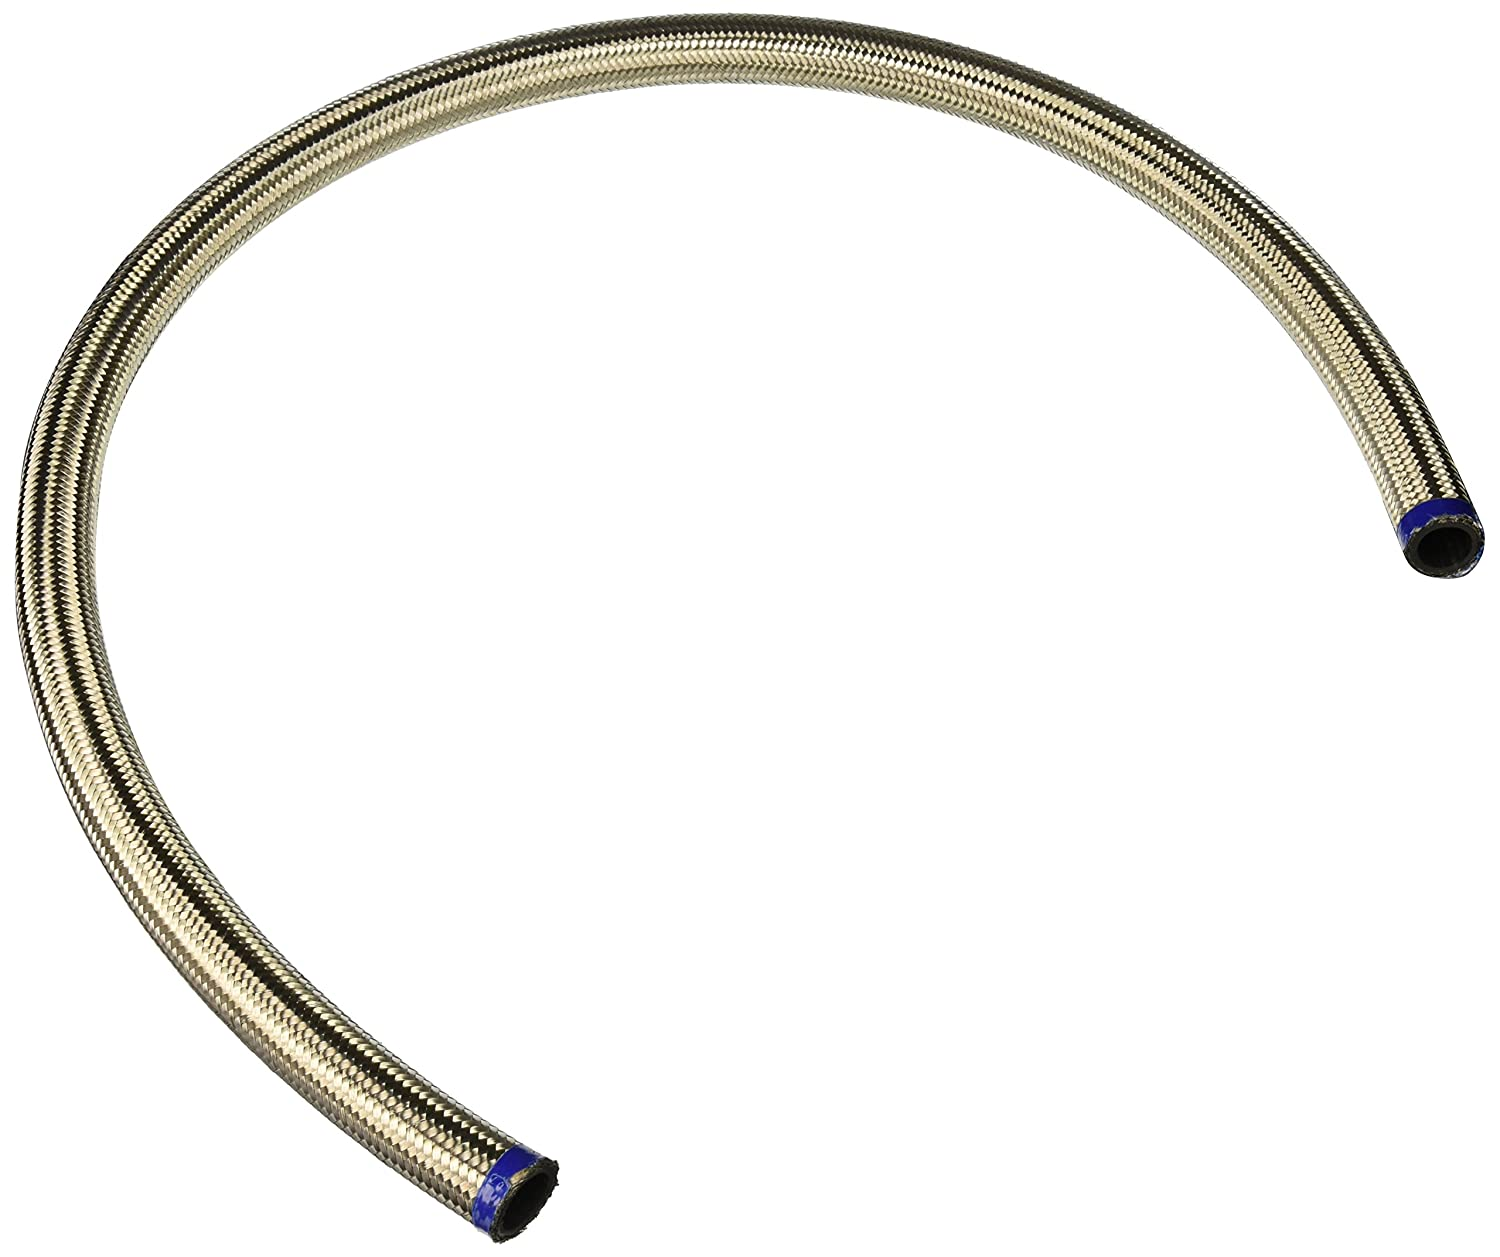 Earl's 303012 Auto-Flex HTE Stainless Steel Wire Braid Size 12 Rubber Hose - 3 Feet Earl' s Performance 303012ERL